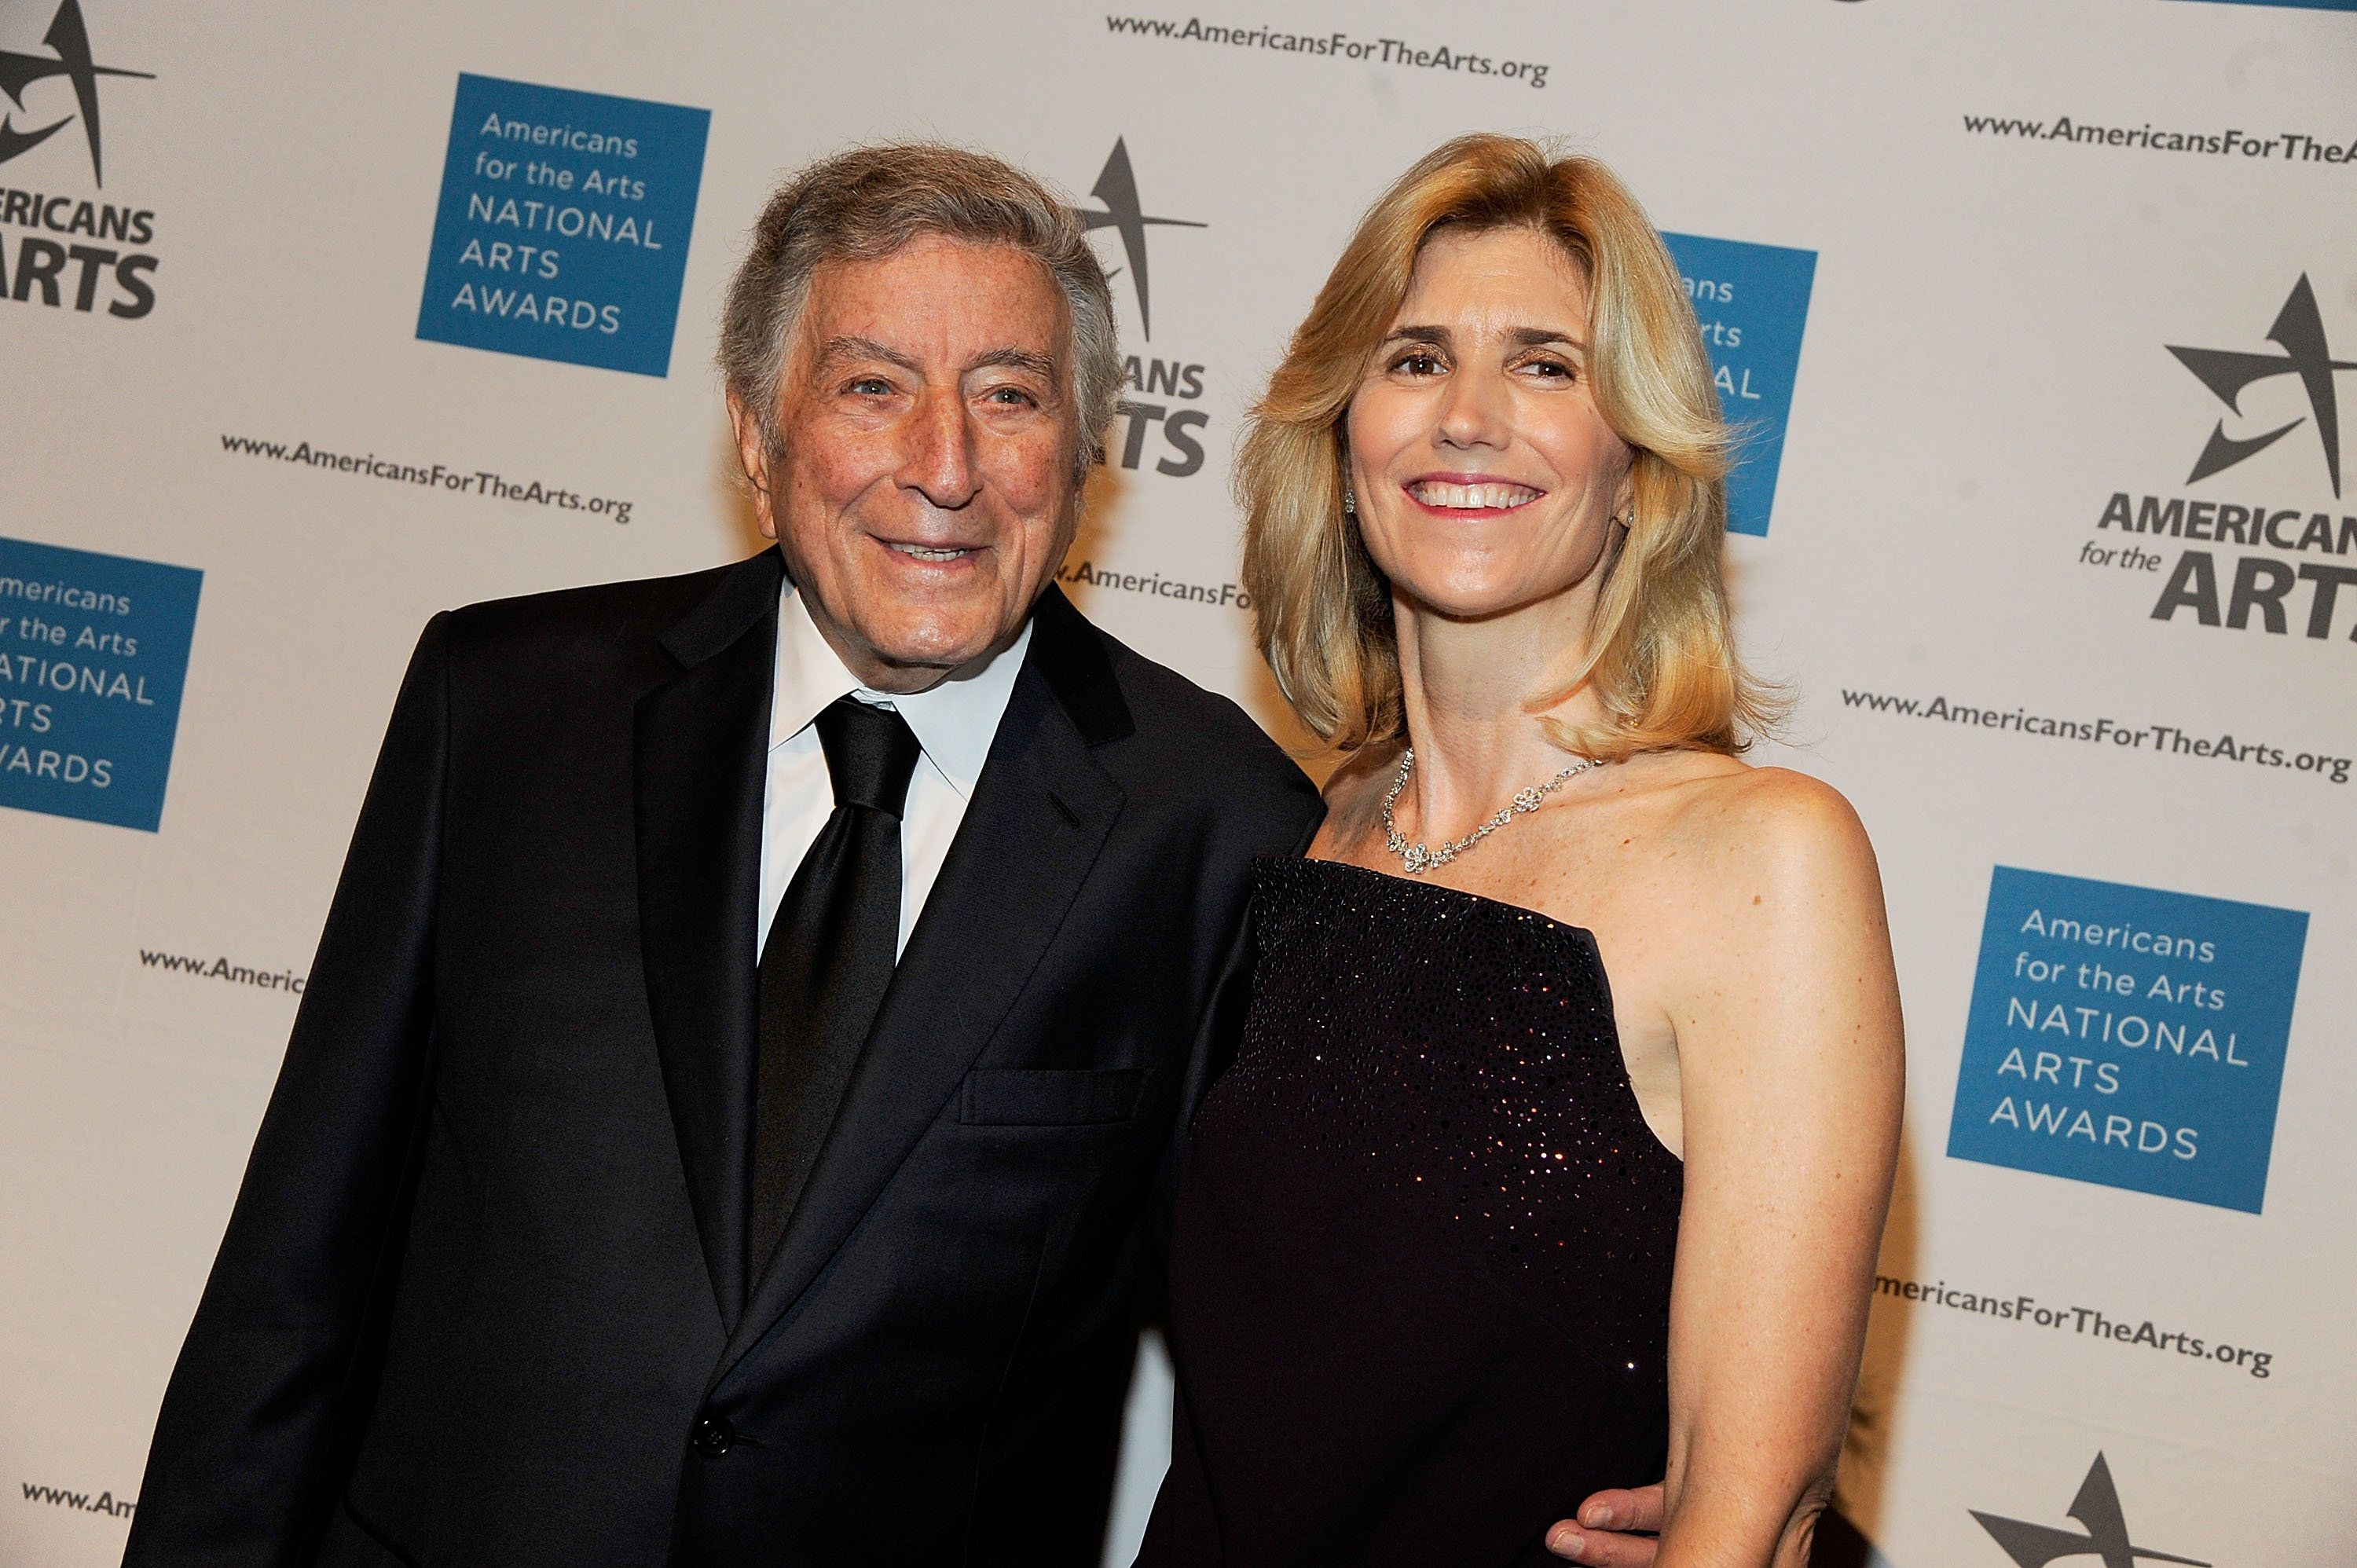 NEW YORK, NY - OCTOBER 17:  Tony Bennett and Susan Benedetto attends the 2016 National Arts Awards at Cipriani 42nd Street on October 17, 2016 in New York City.  (Photo by Rabbani and Solimene Photography/Getty Images)